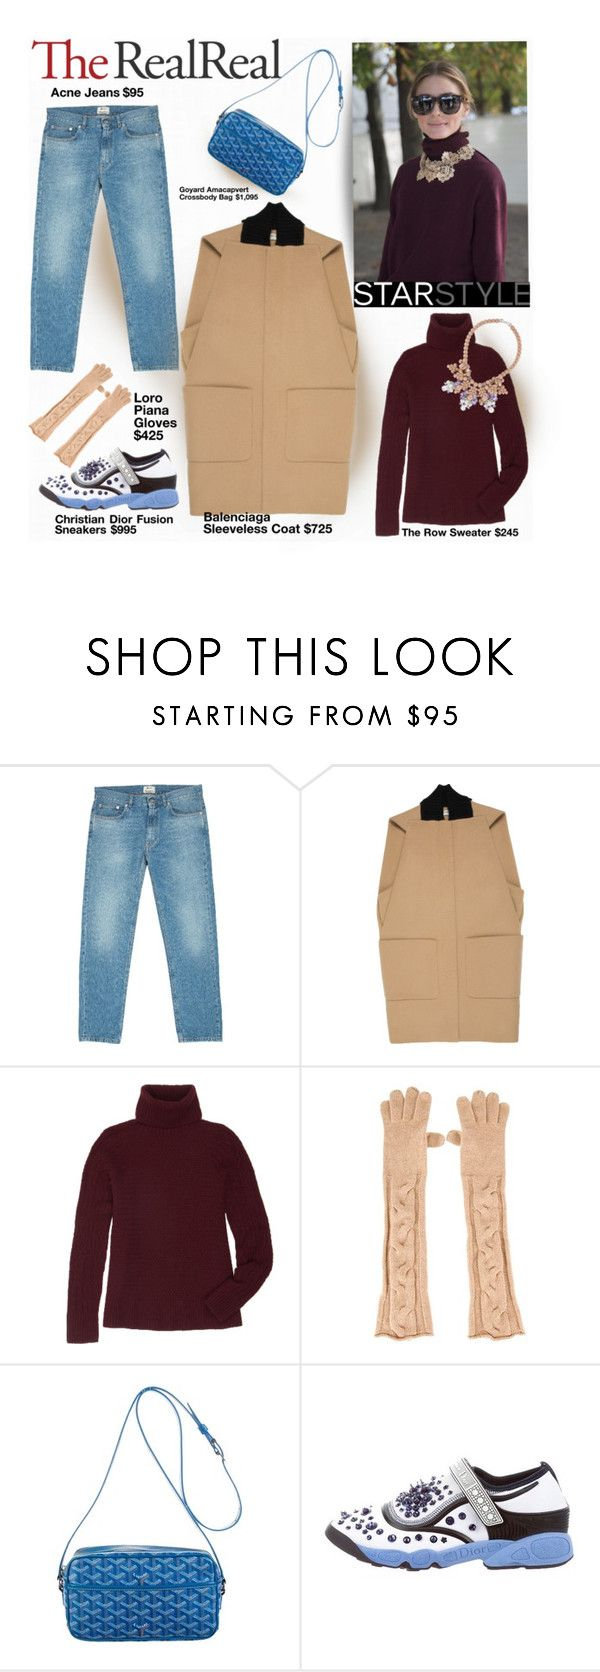 """""""Fall Style With The RealReal: Contest Entry"""" by piedraandjesus ❤ liked on Polyvore featuring Acne Studios, Balenciaga, The Row, Loro Piana, Goyard, Christian Dior and Ek Thongprasert"""